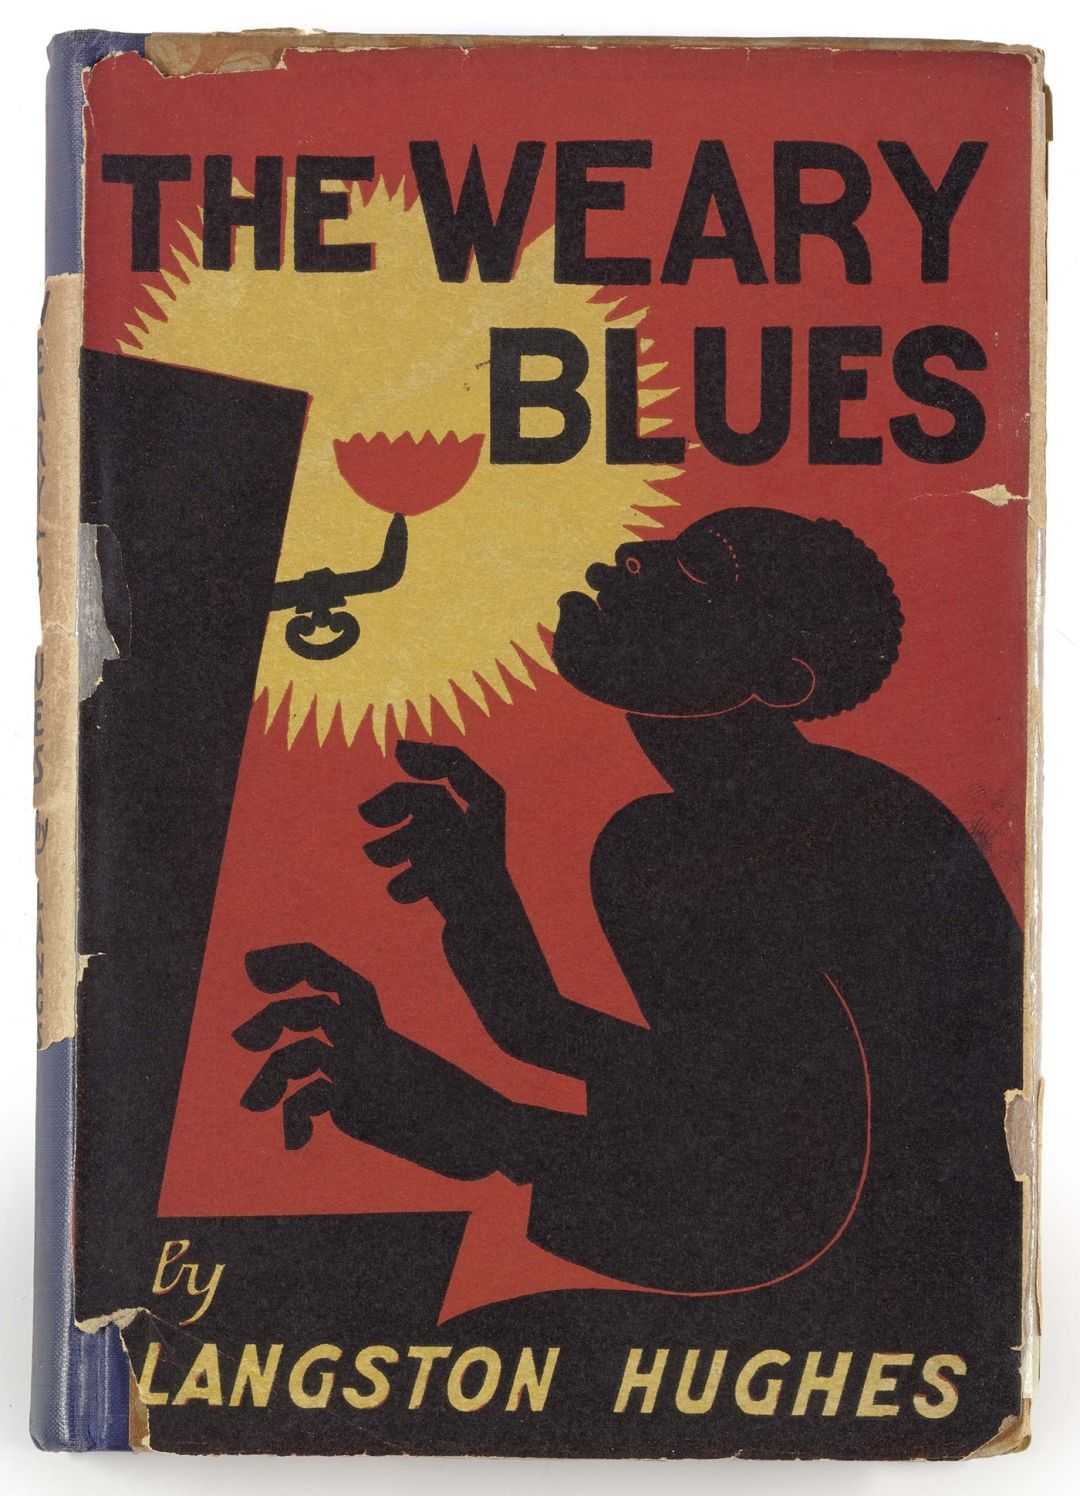 the_weary_blues_book_langston_hughes.jpg